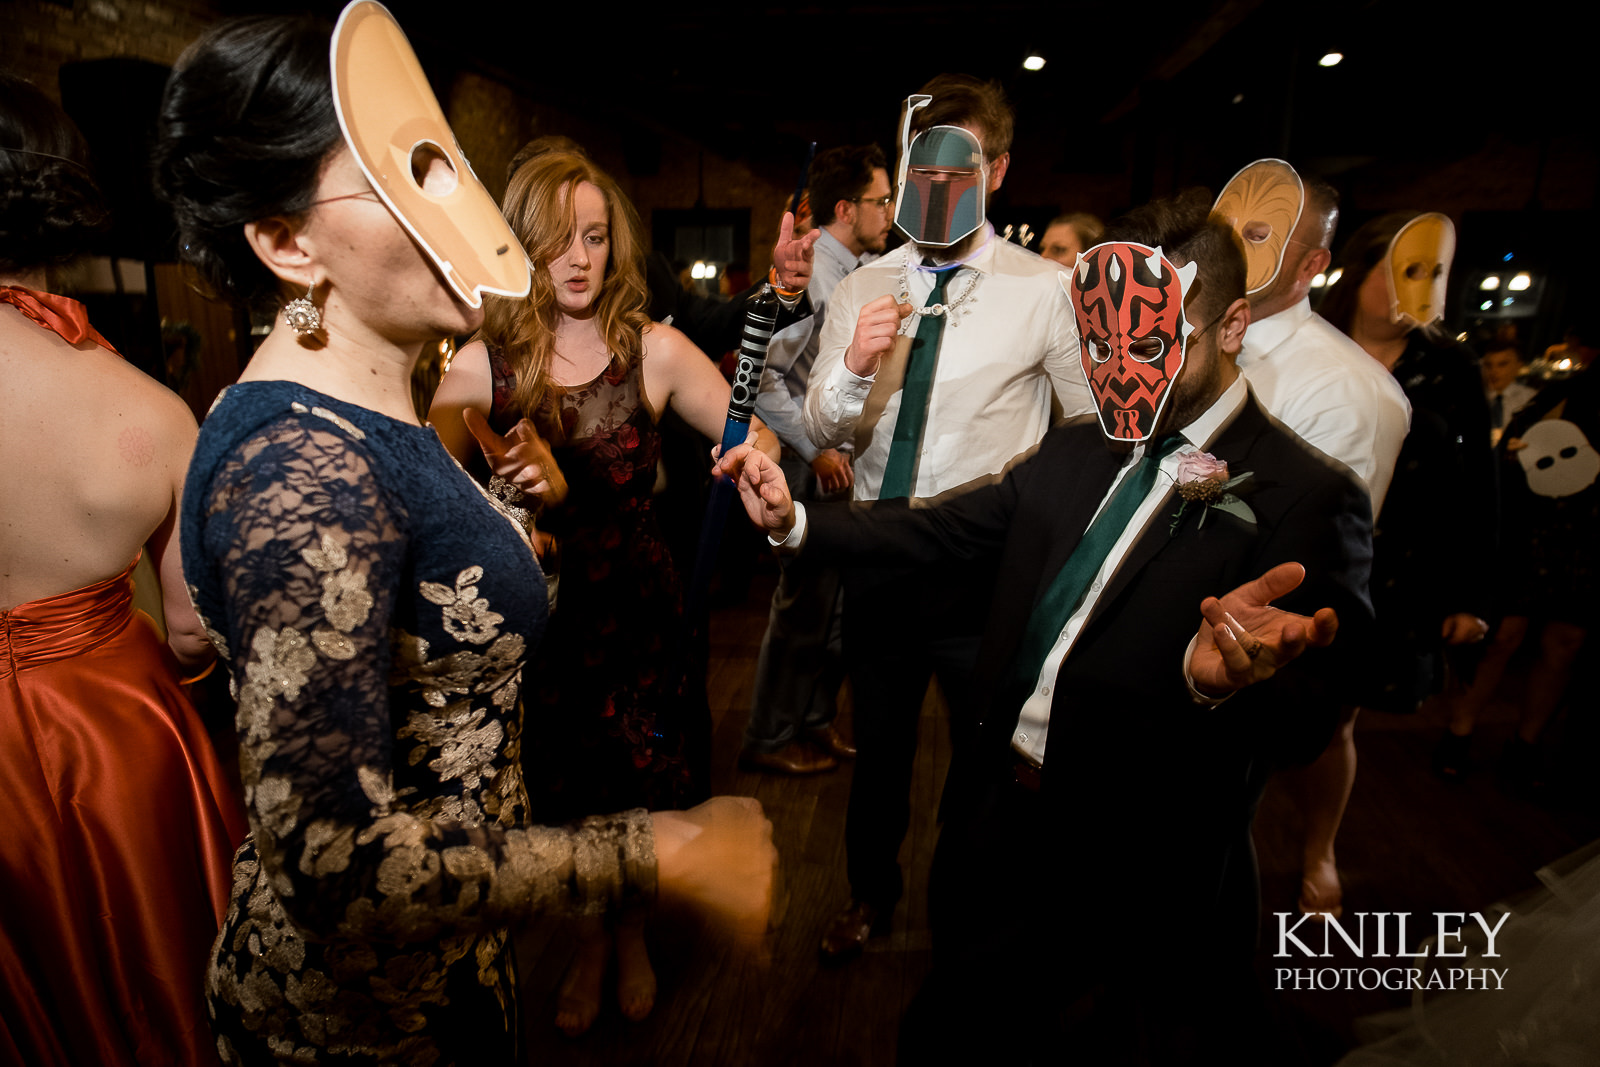 62-Pearl-St-Grill-Wedding-Reception-Buffalo-NY-Kniley-Photography-Star-Wars-May-the-4th.jpg